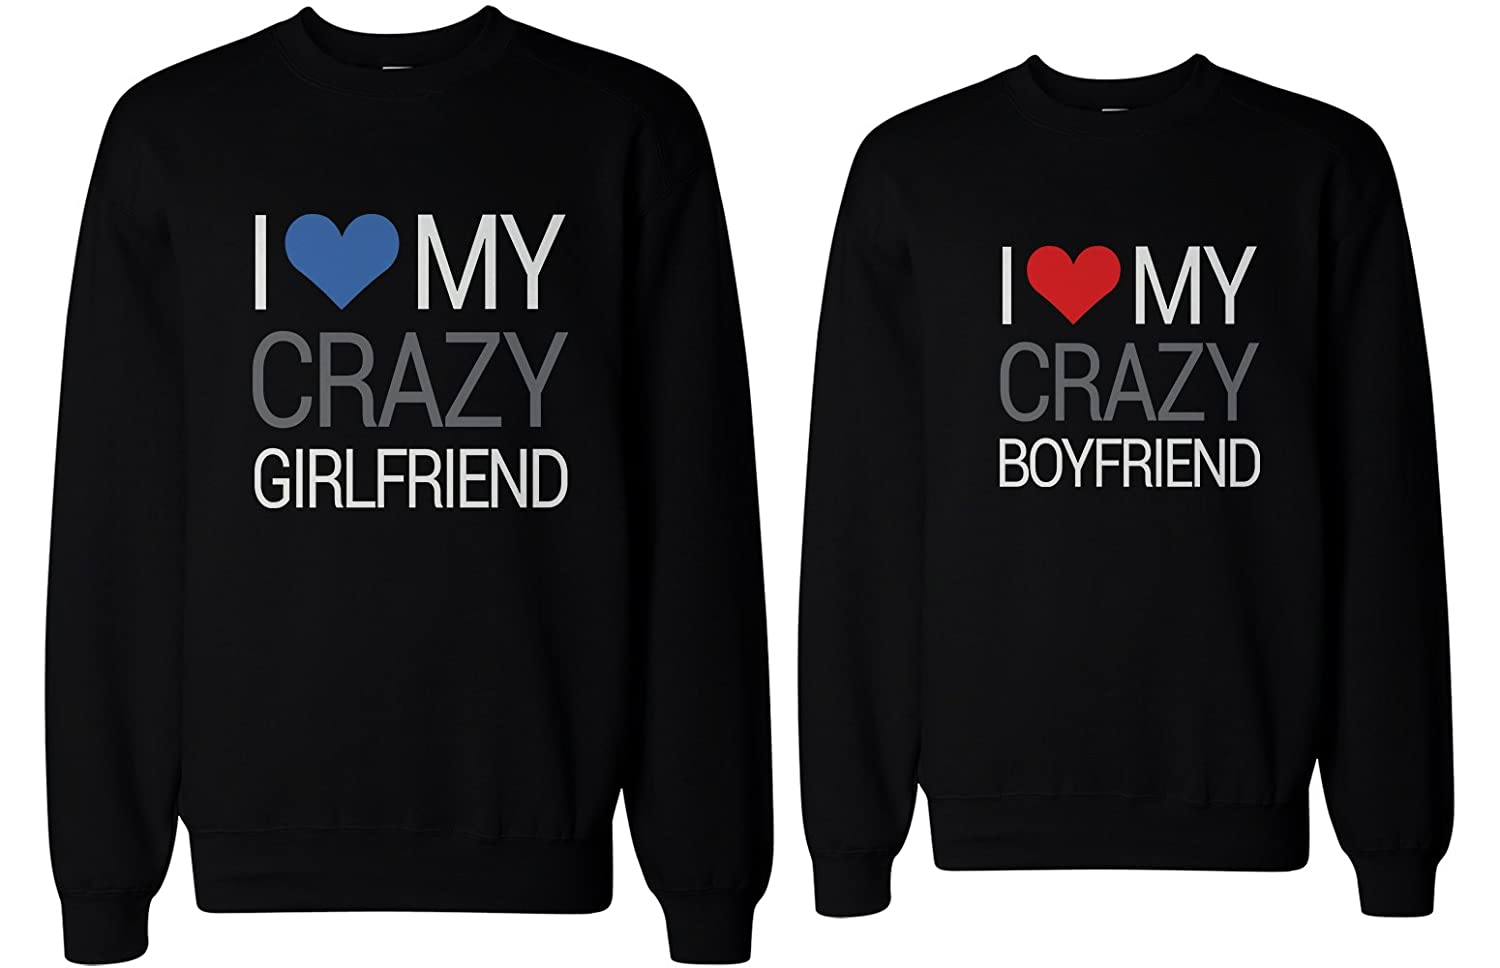 Amazon.com: His and Her I Love My Crazy Boyfriend and Girlfriend Matching Sweatshirts for Couples: Clothing